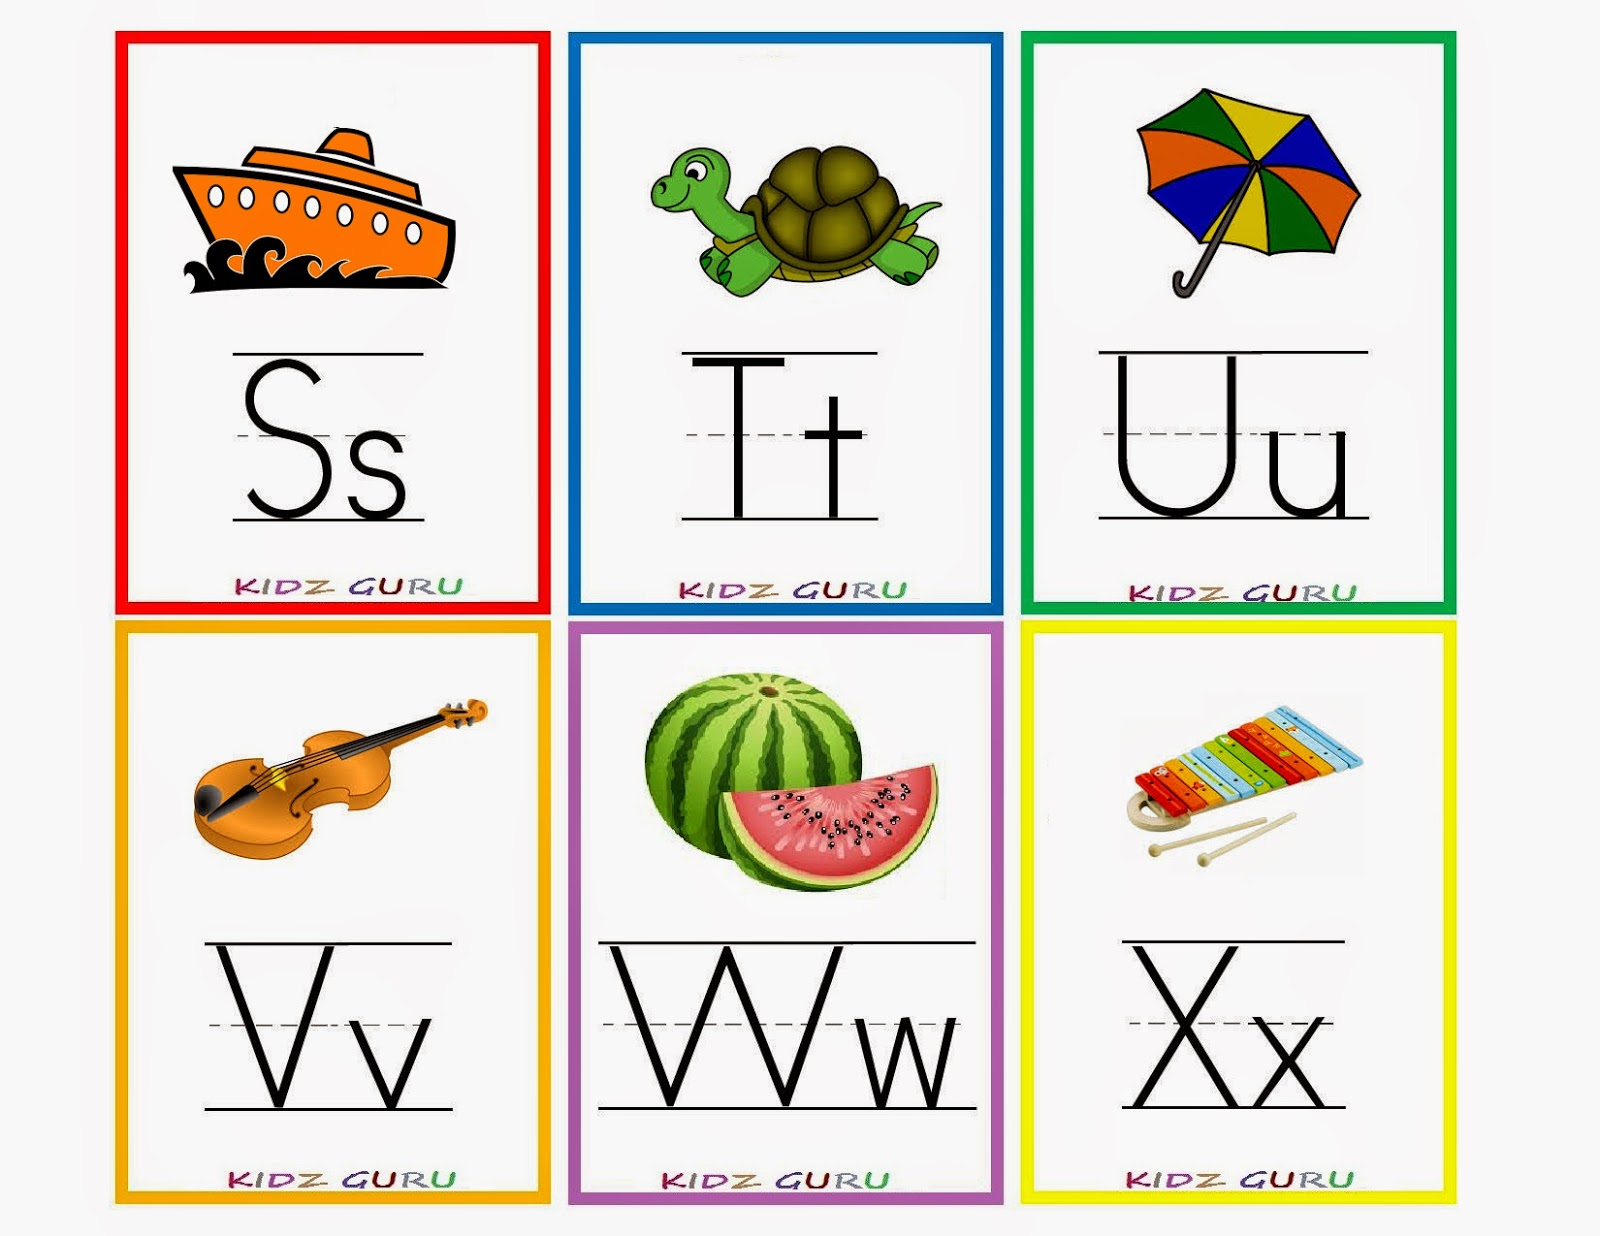 photograph regarding Abc Flash Cards Printable known as Kindergarten Worksheets: Printable Worksheets - Alphabet